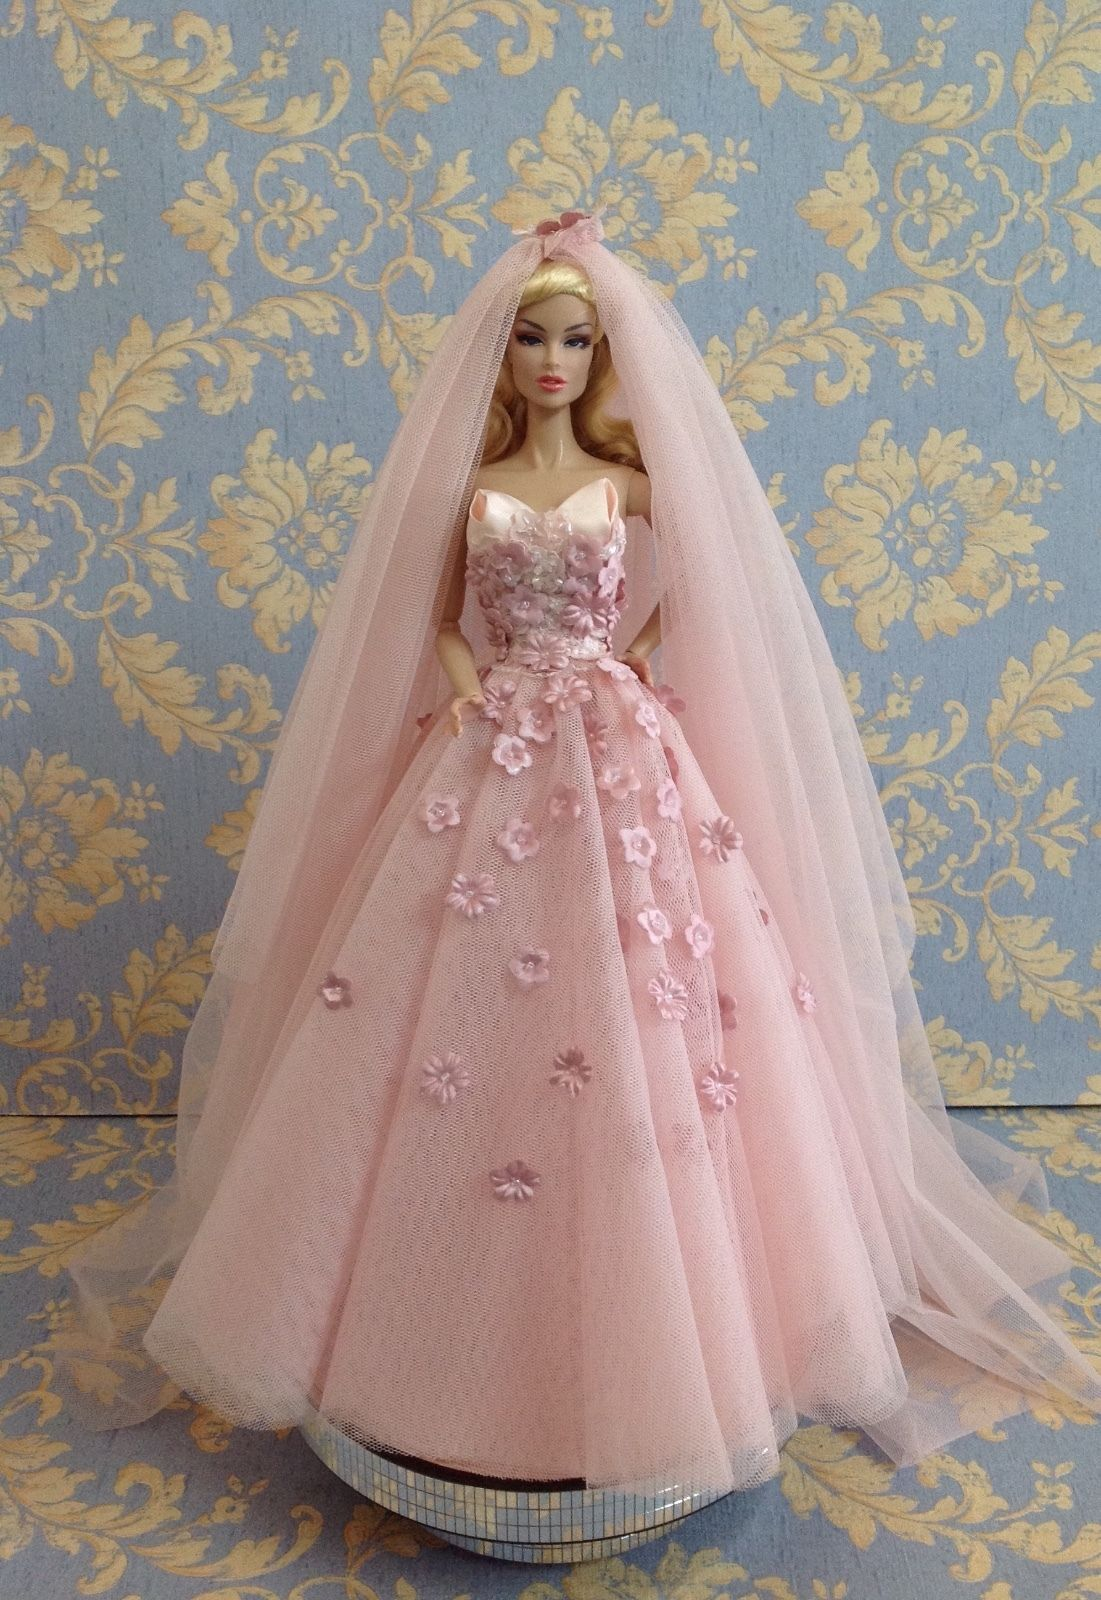 Bestty Doll Gown Outfit Dress Fashion Royalty Silkstone Barbie Model ...